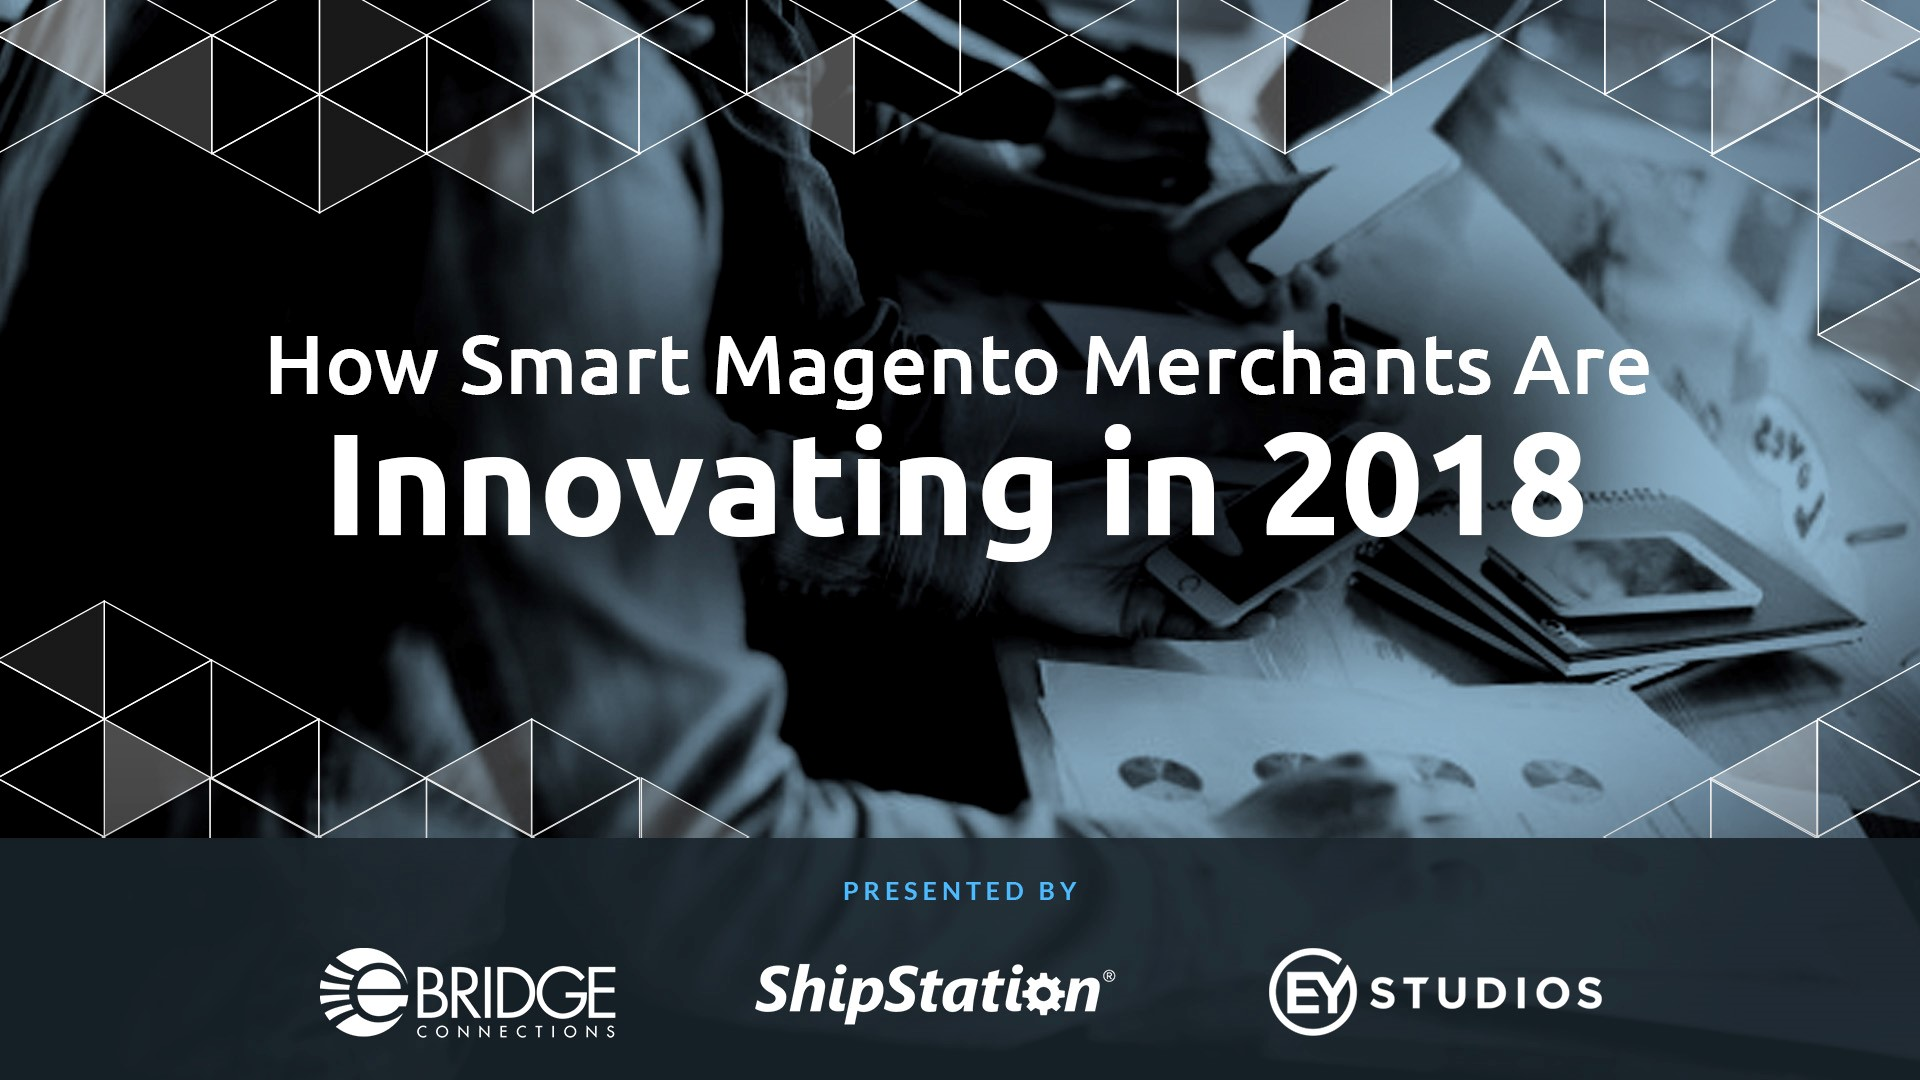 How Smart Magento Merchants Are Innovating in 2018